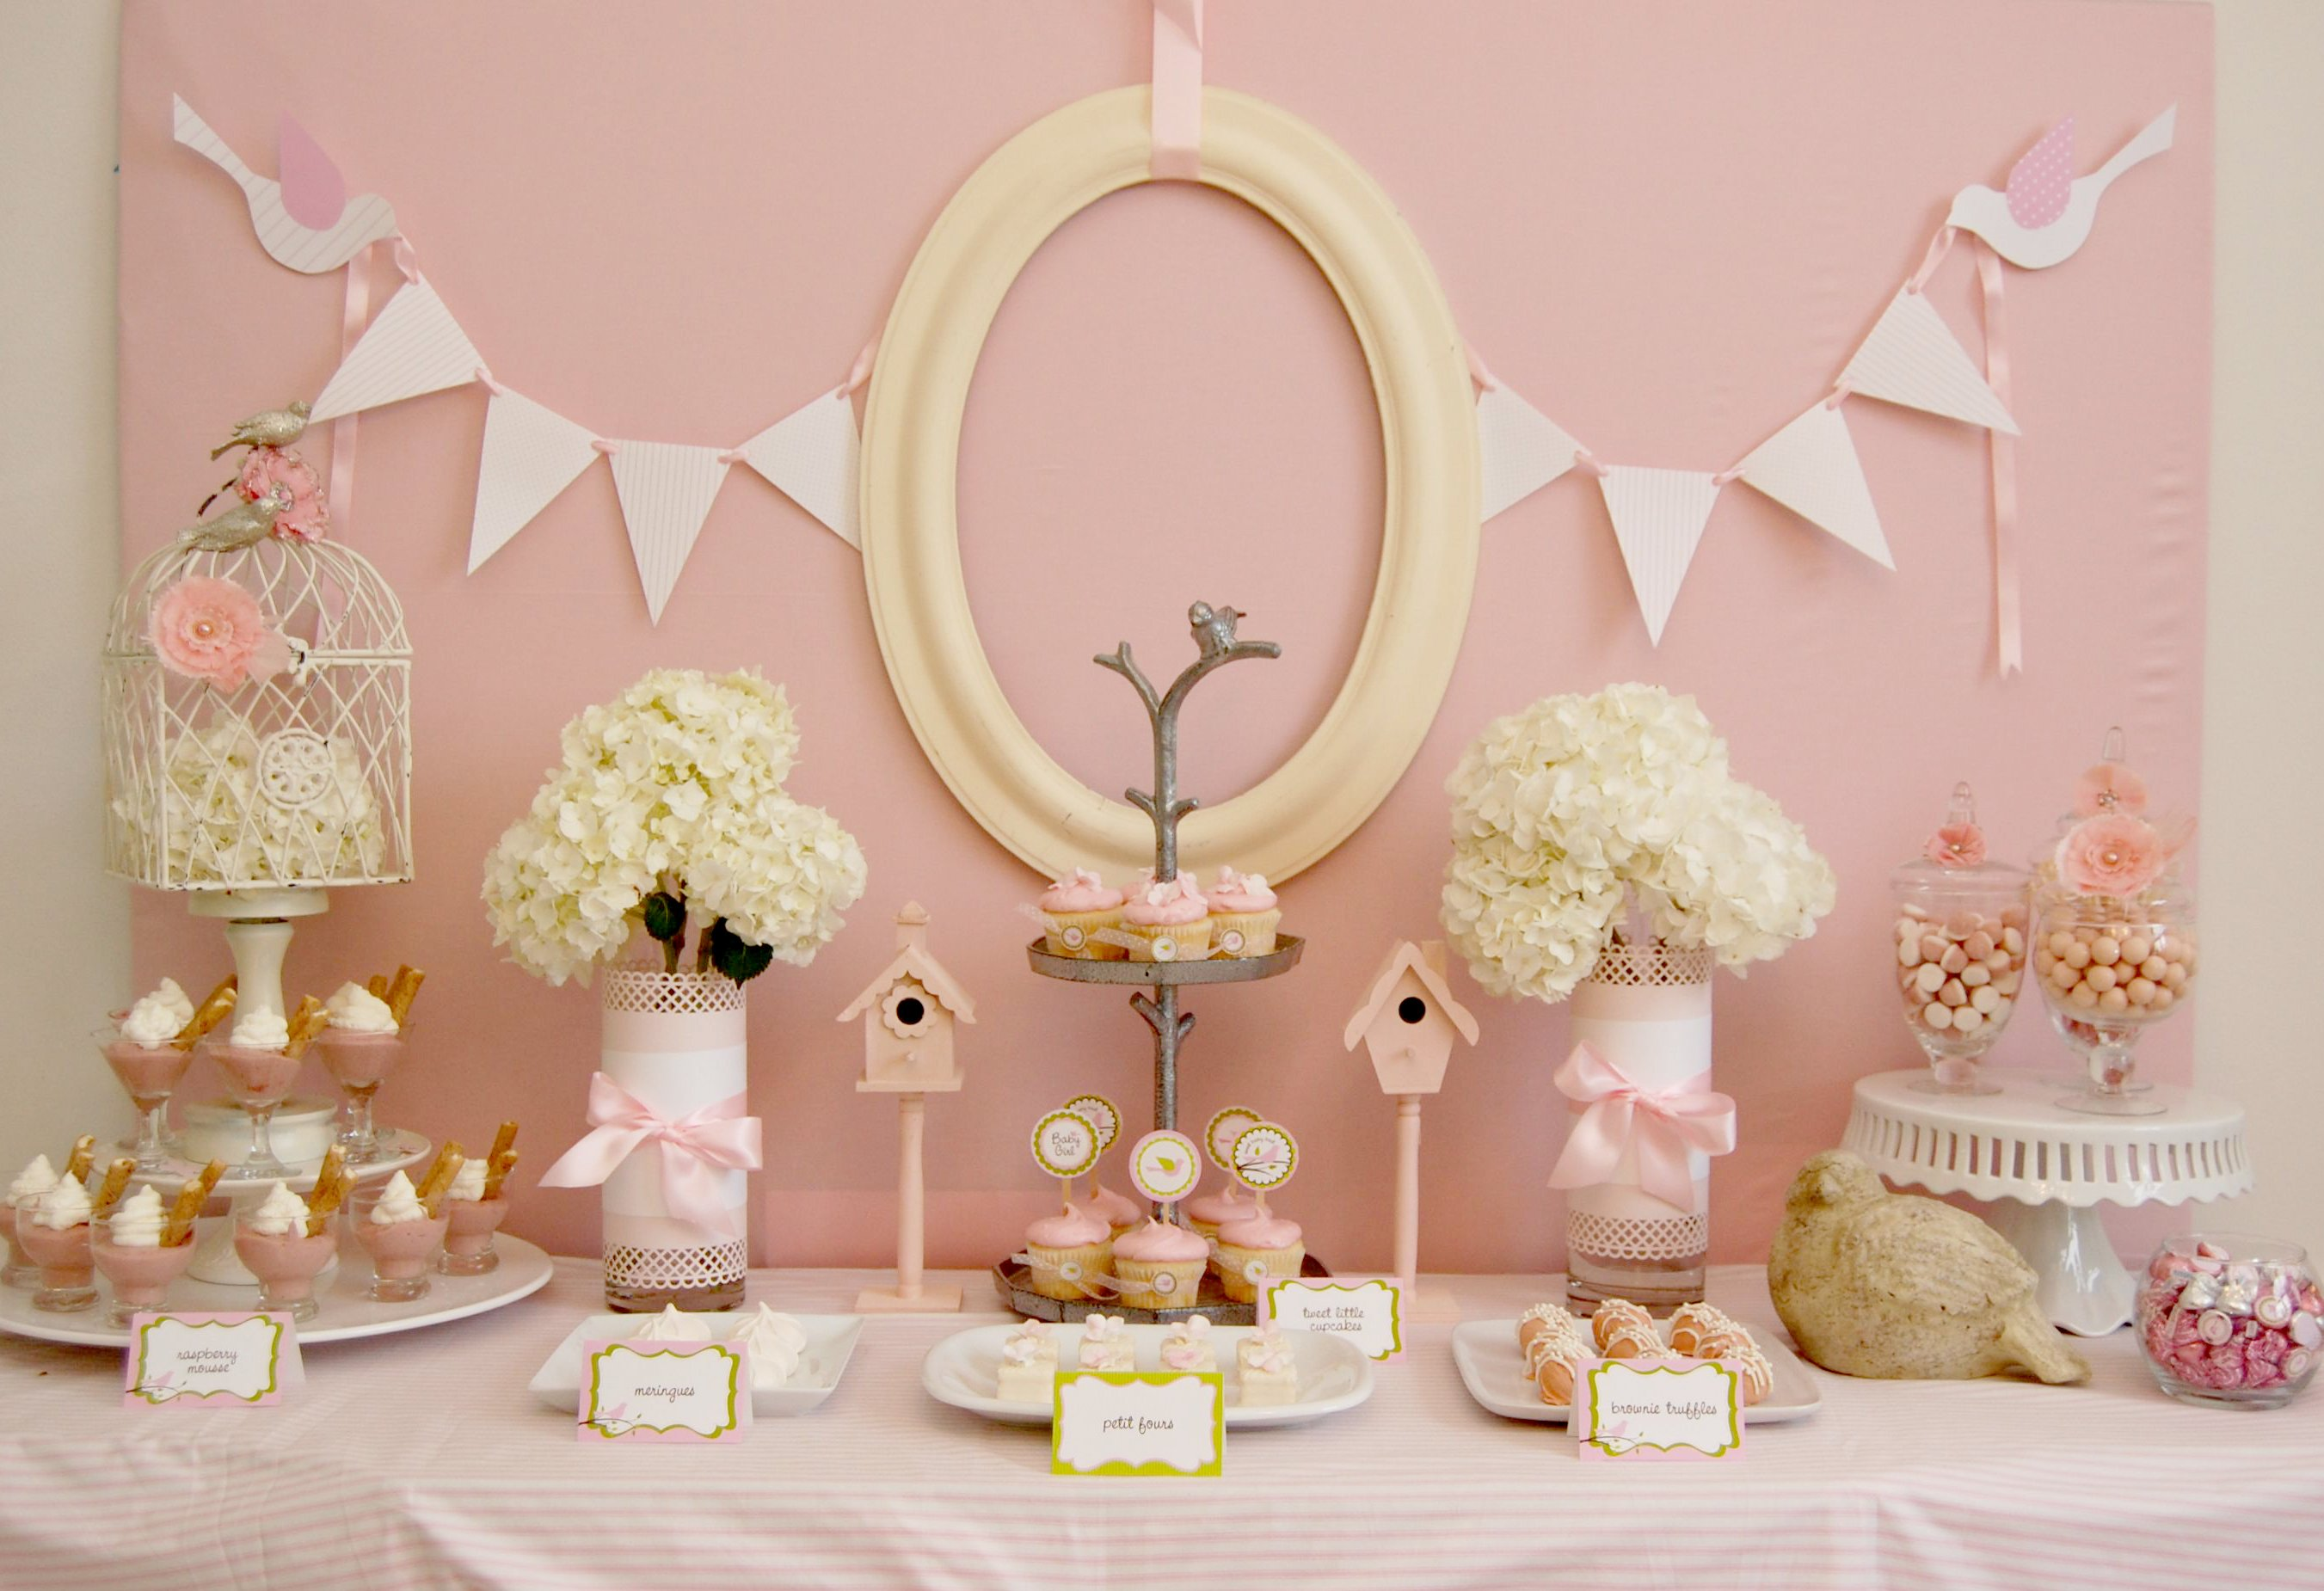 Cute baby shower table ideas photograph baby shower food i for Baby shower party decoration ideas